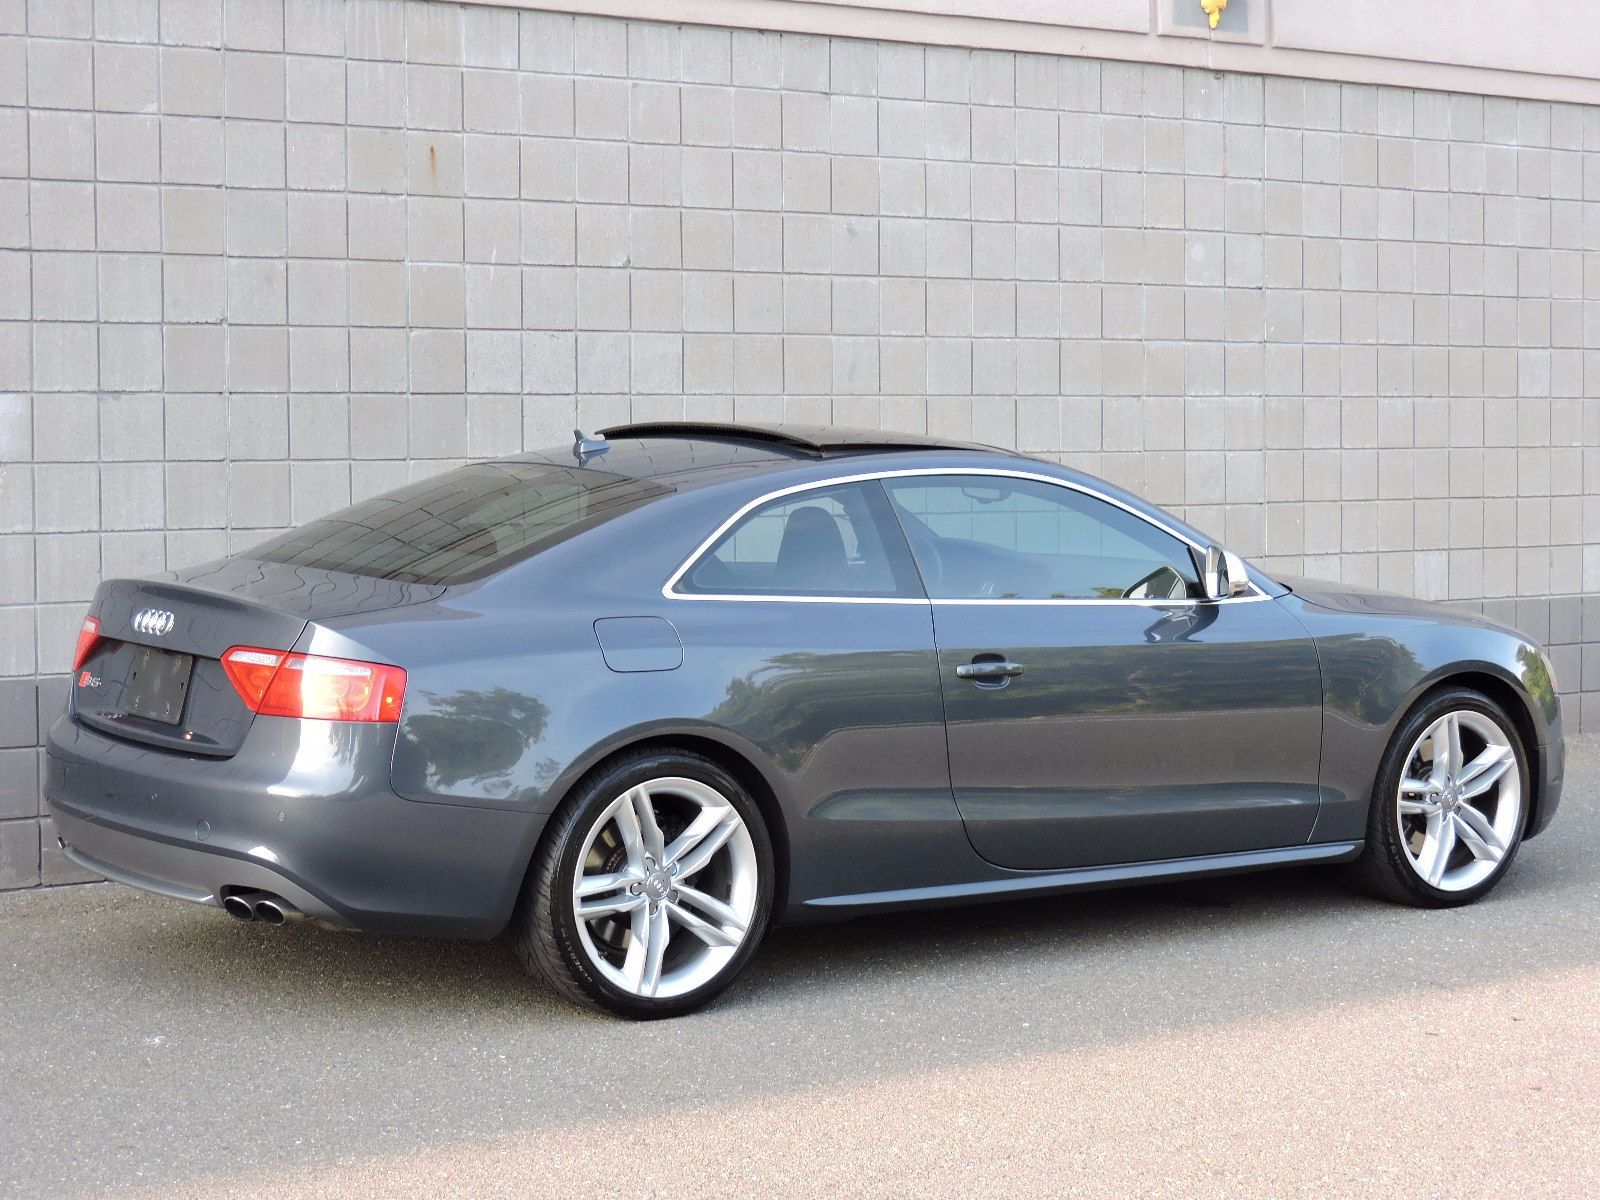 versus of it tuned img chris s two audis audi tale a auto used pfaff its